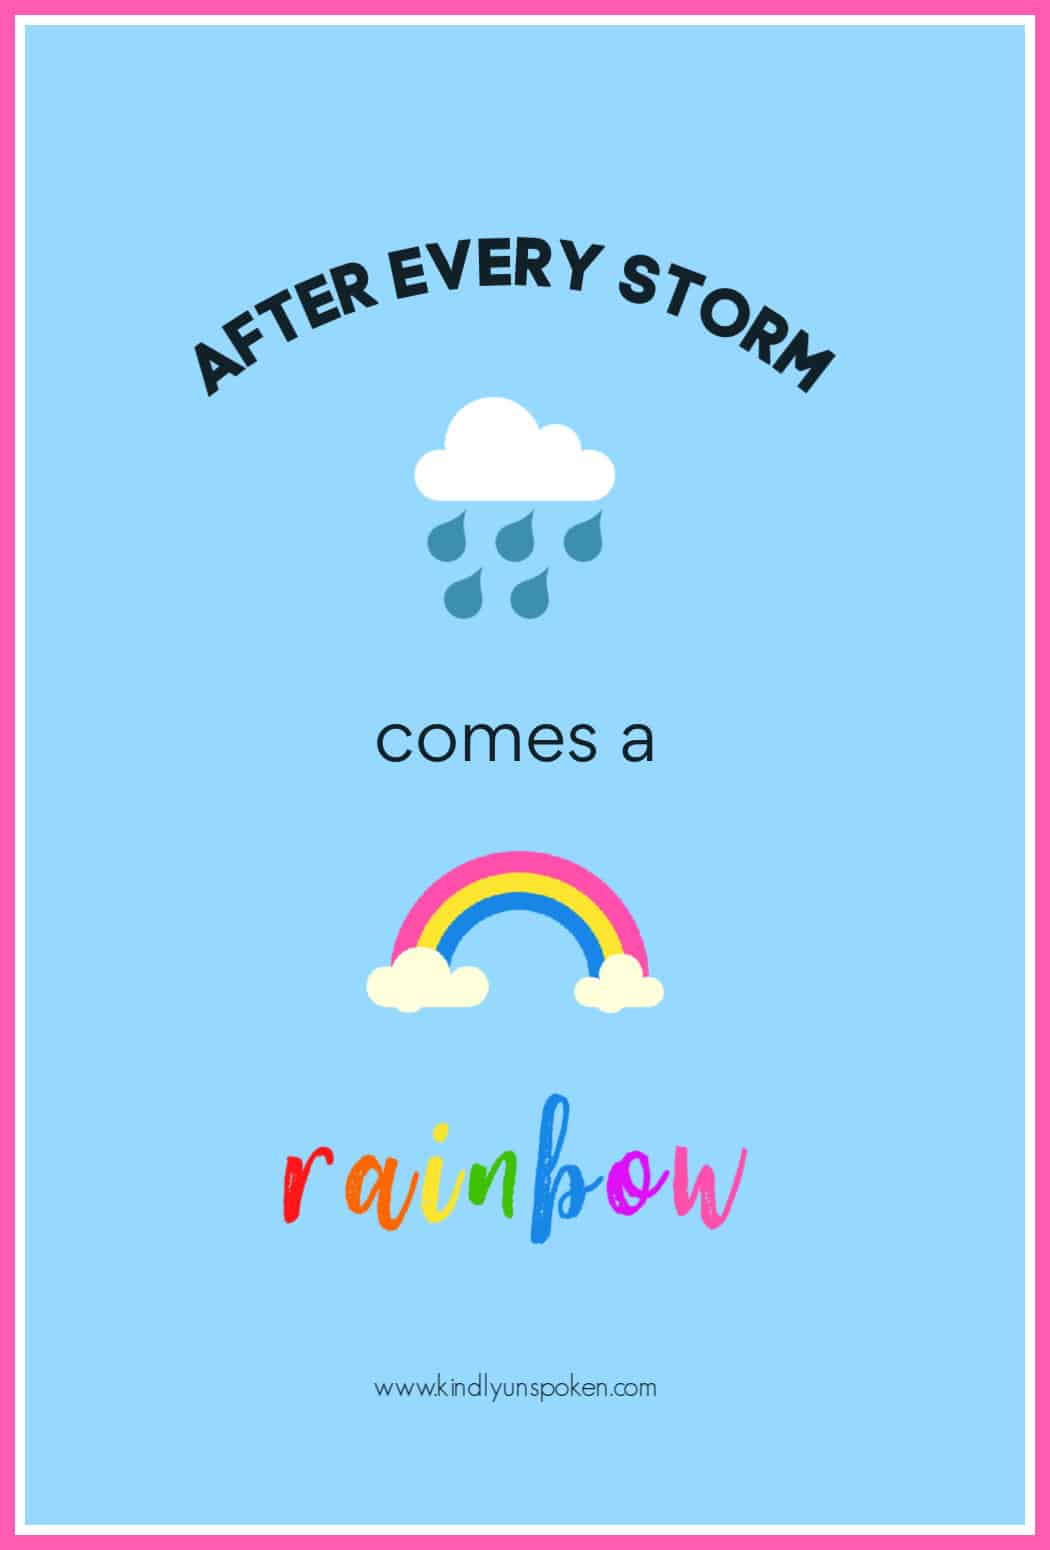 """After every storm comes a rainbow."" - Check out my 12 Gorgeous and Girly Free Printable Quotes with Inspirational Quotes for Hard Times. These motivational quotes will provide words of encouragement and inspiration to stay positive even when things are tough. Print and frame these free 8x10 printables for your home, office, or wallpaper. #inspirationalquotes #motivationalquotes #printables #printablequotes"